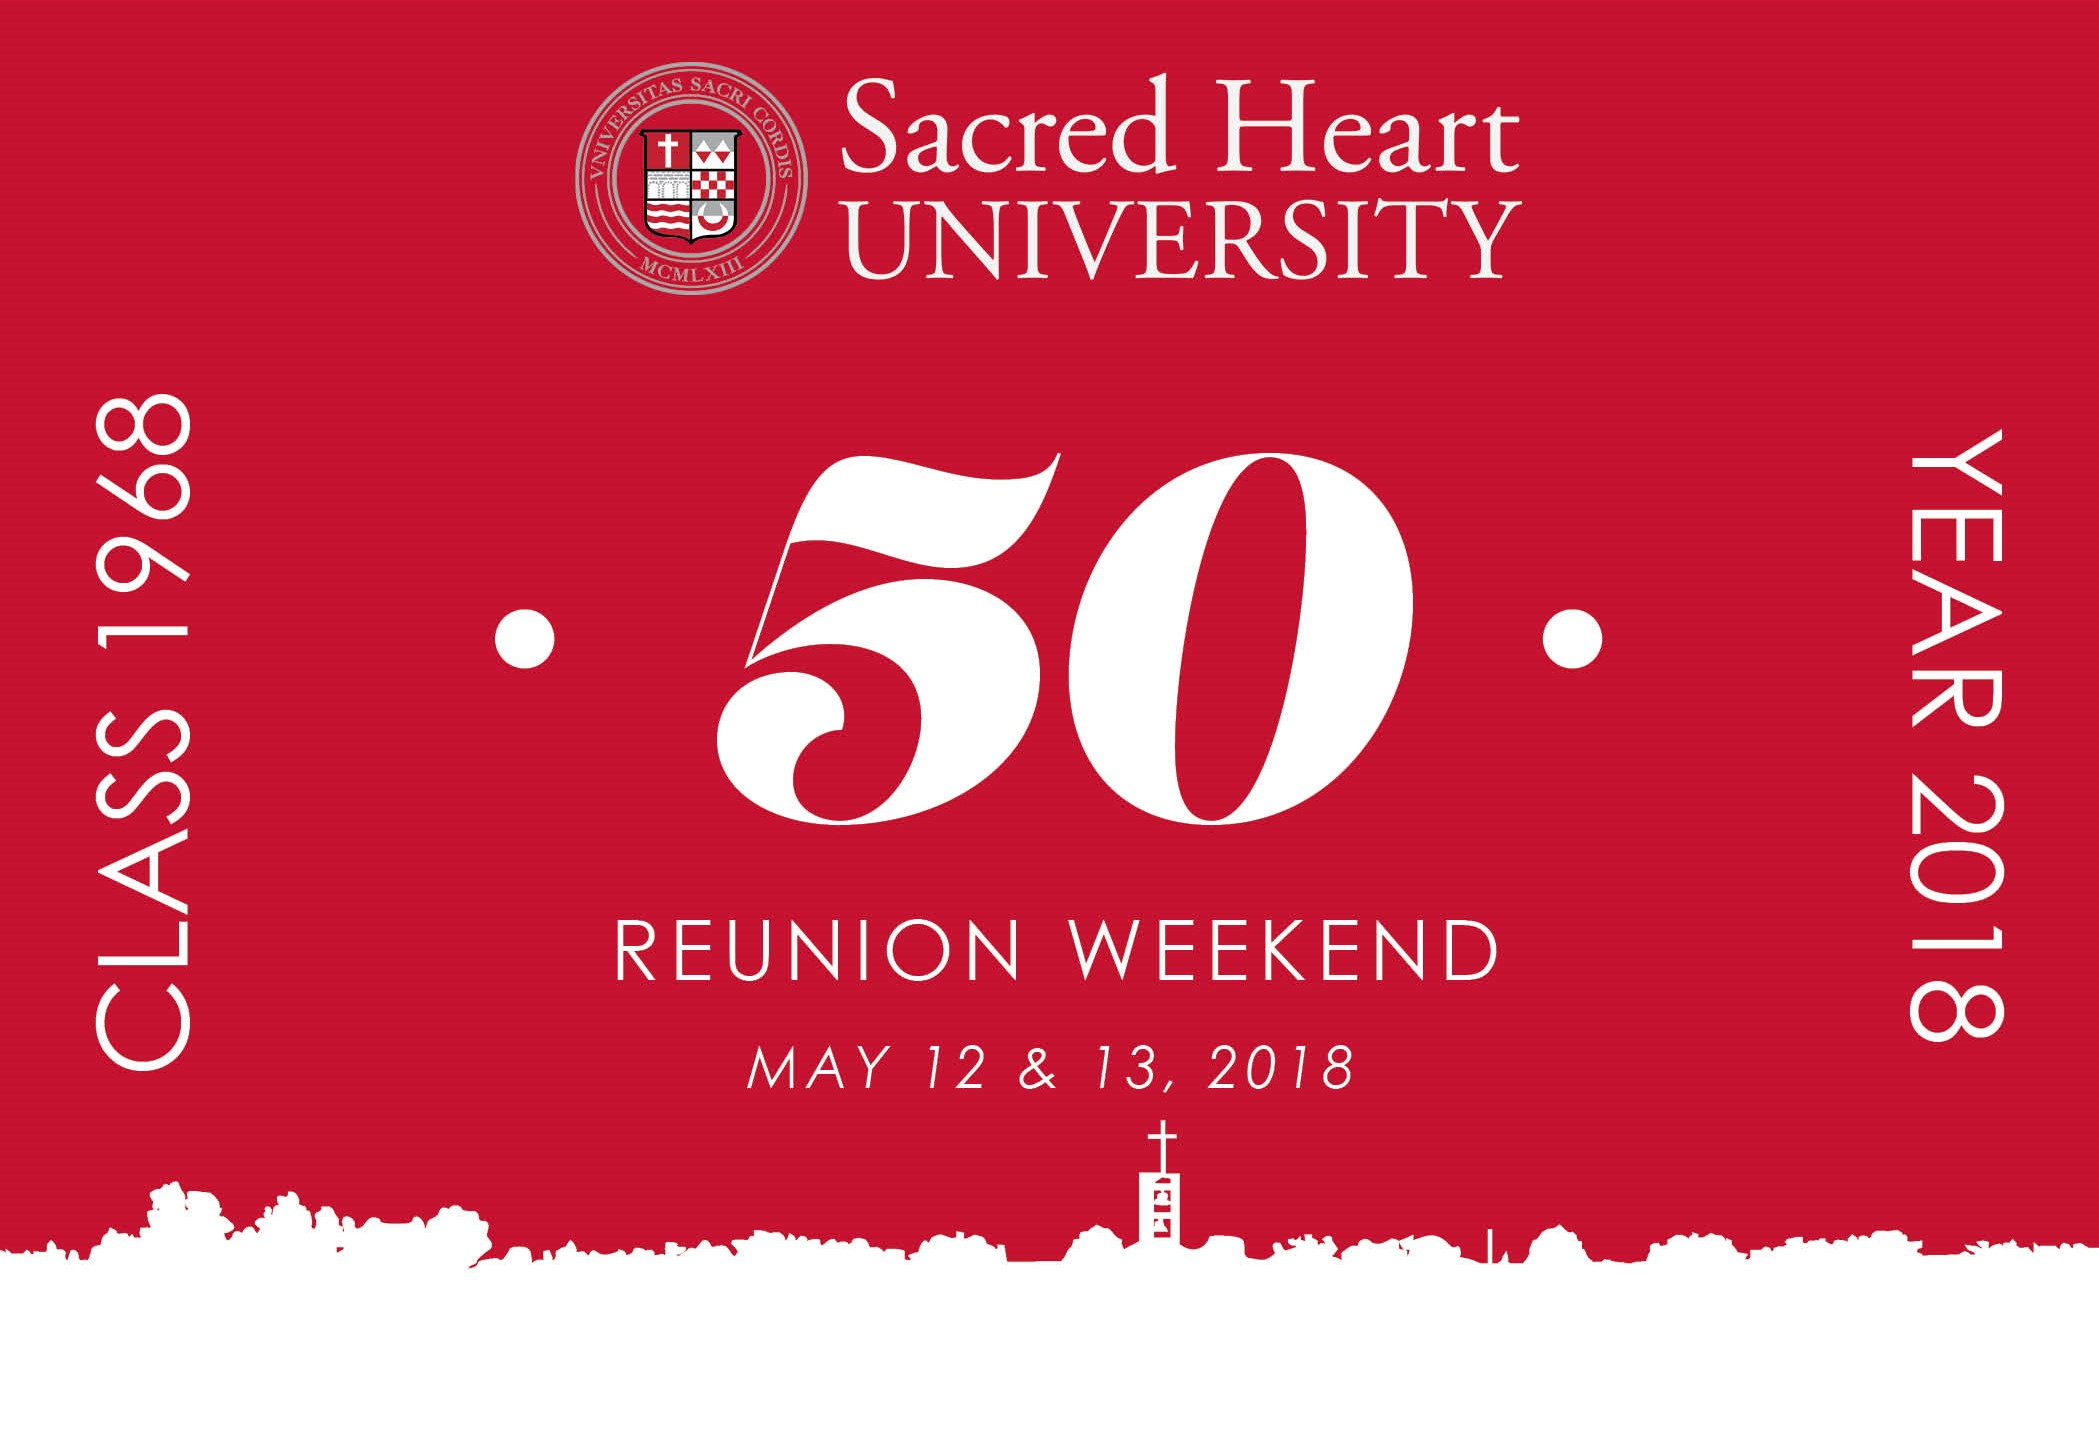 Invited to 50th Reunion